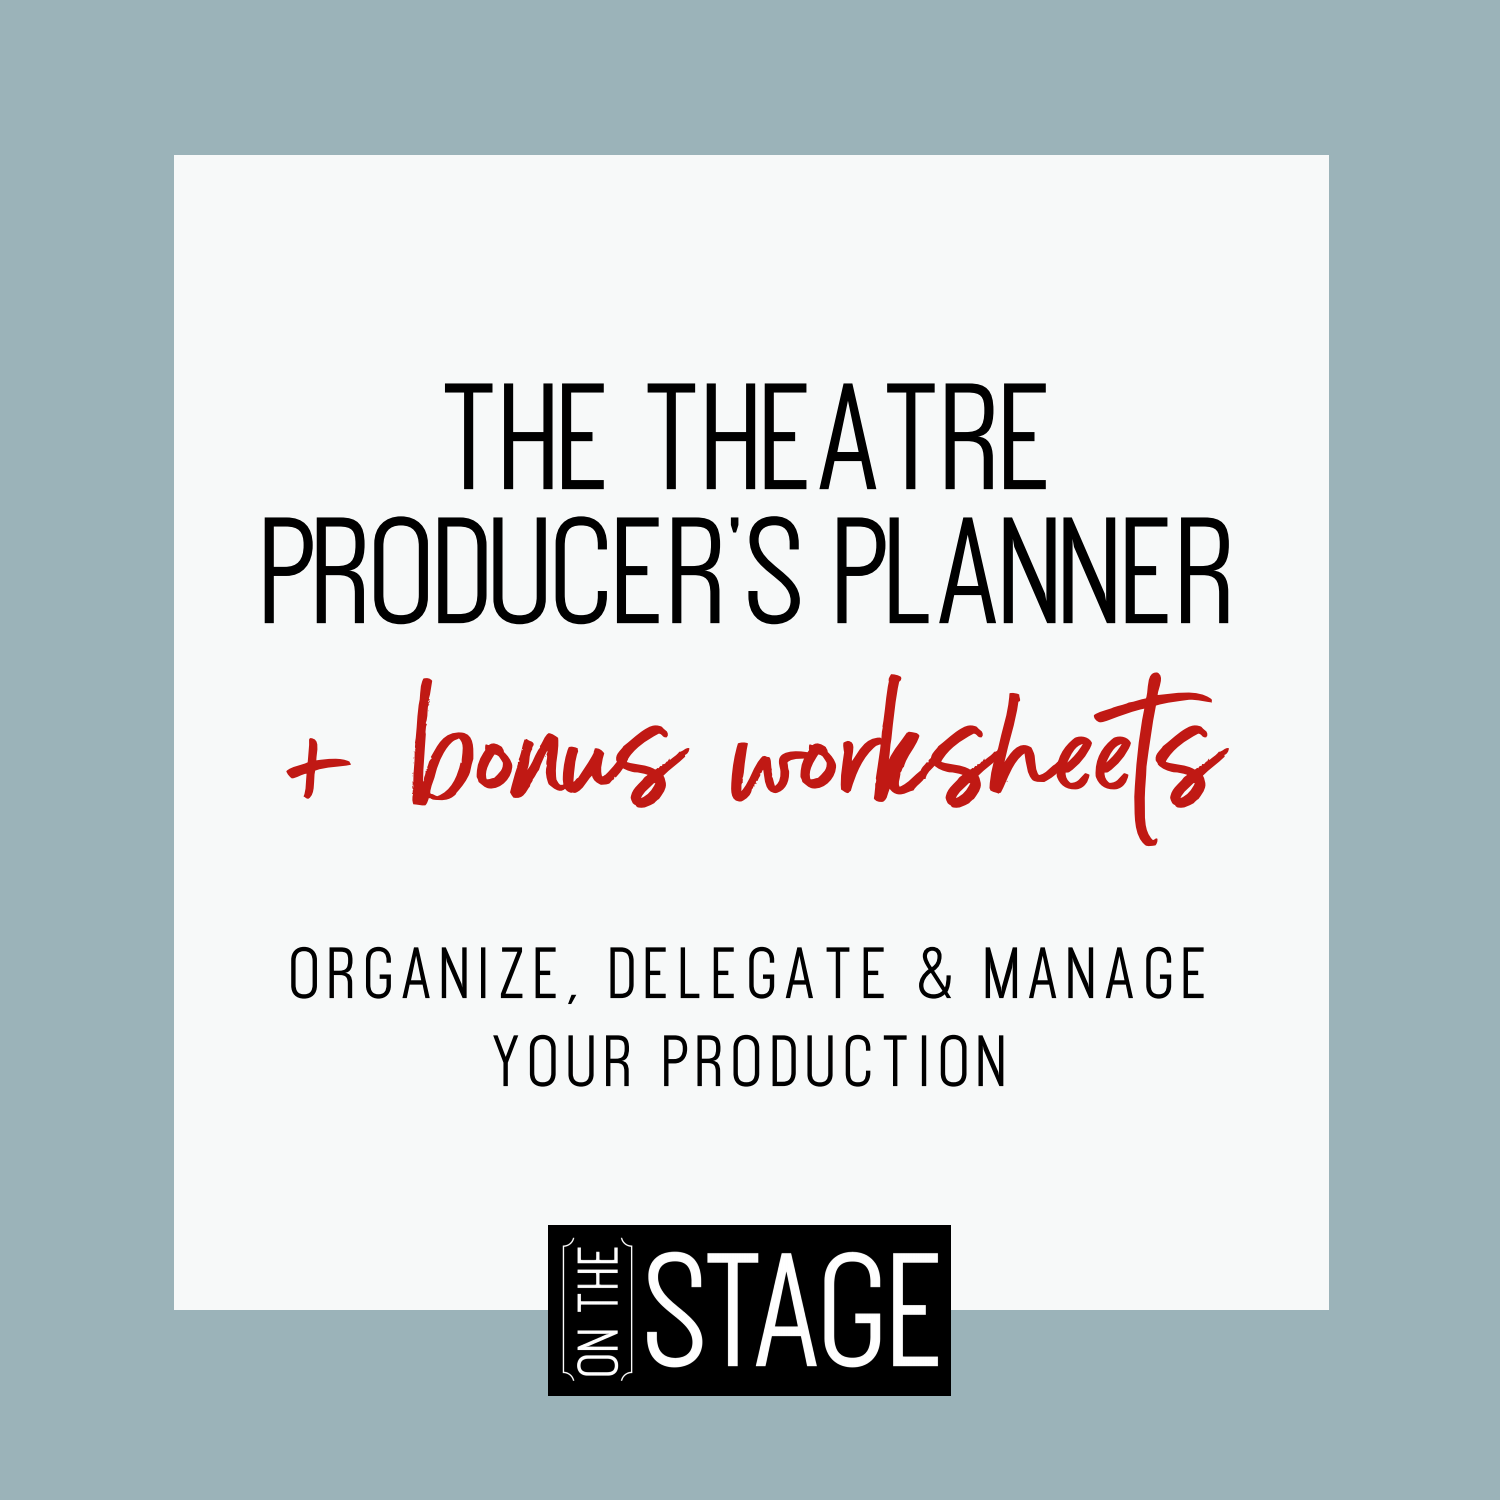 The Theatre Producers Planner | Square cover